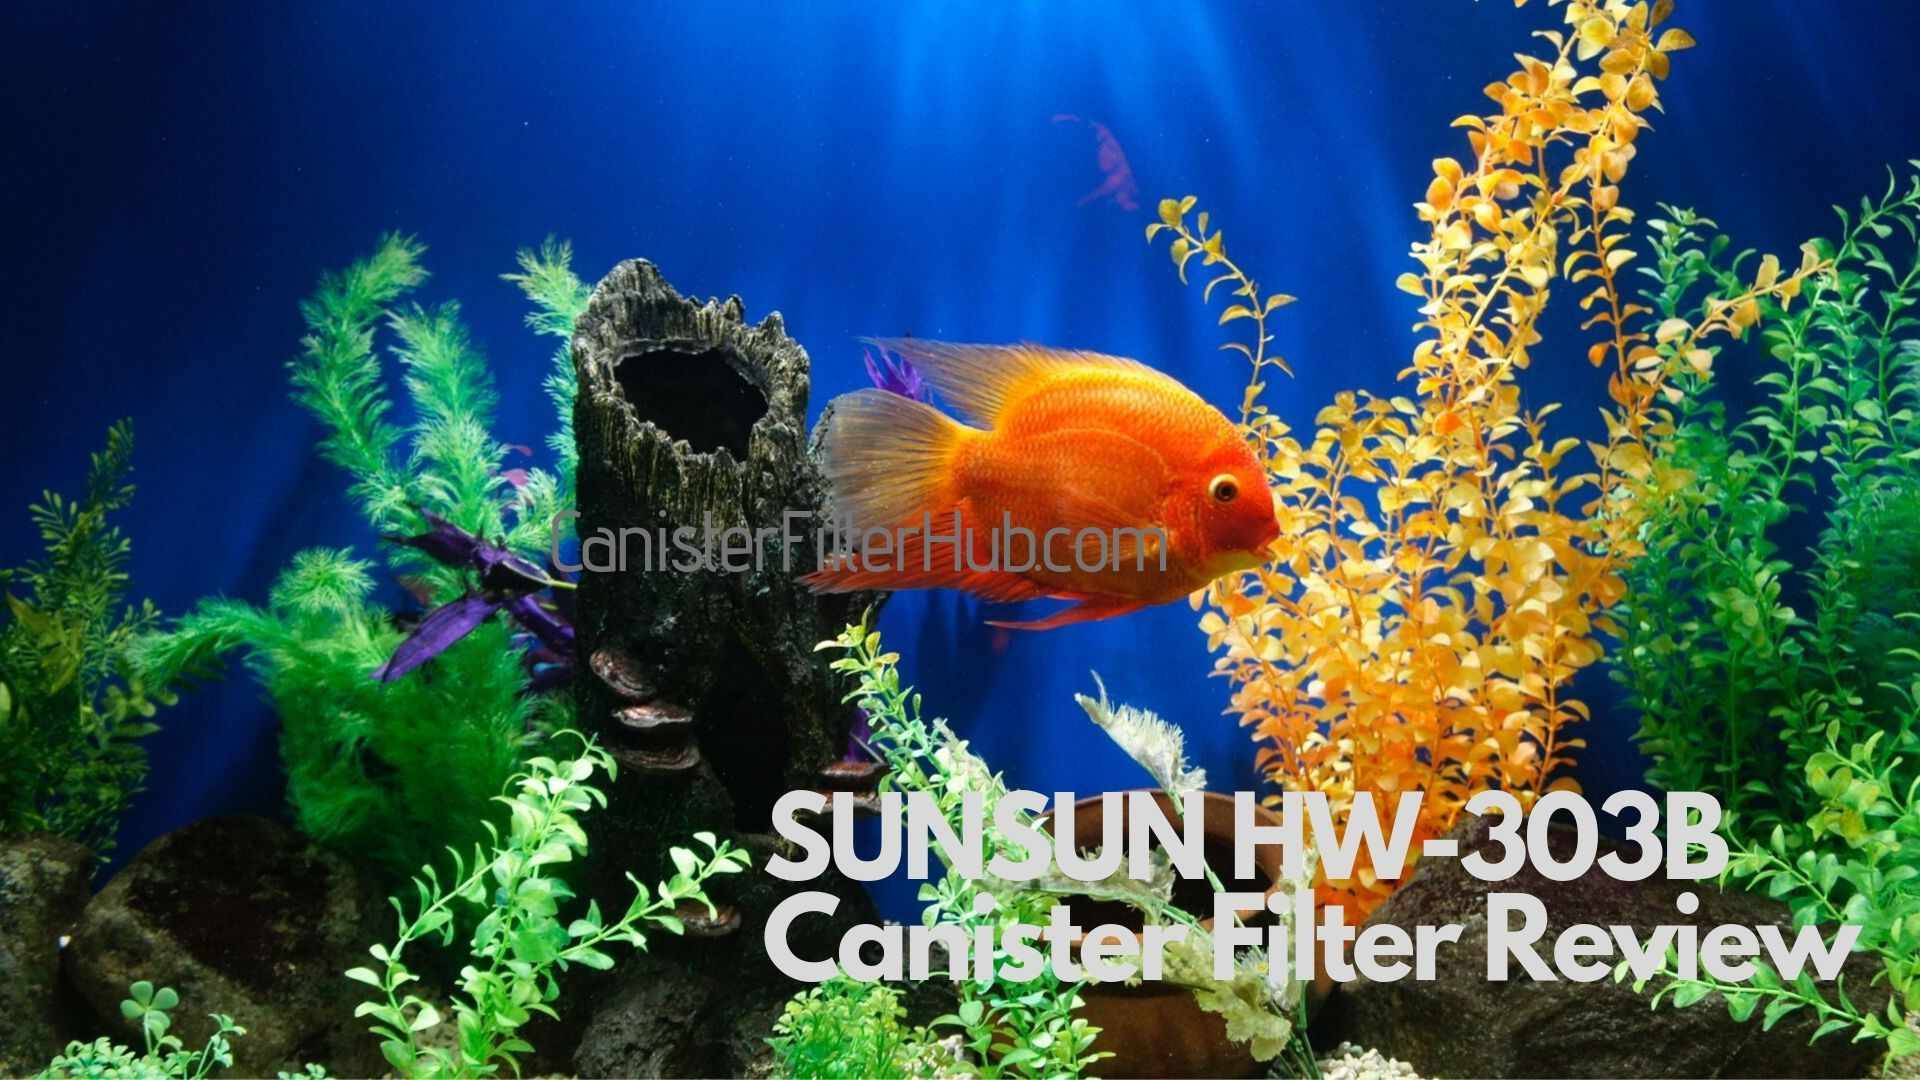 Are You Looking For The Sunsun 303b Canister Filter Review Well Read Our Blog We Are Not Trying To Sale J 40 Gallon Turtle Tank Turtle Tank Flexible Tubing